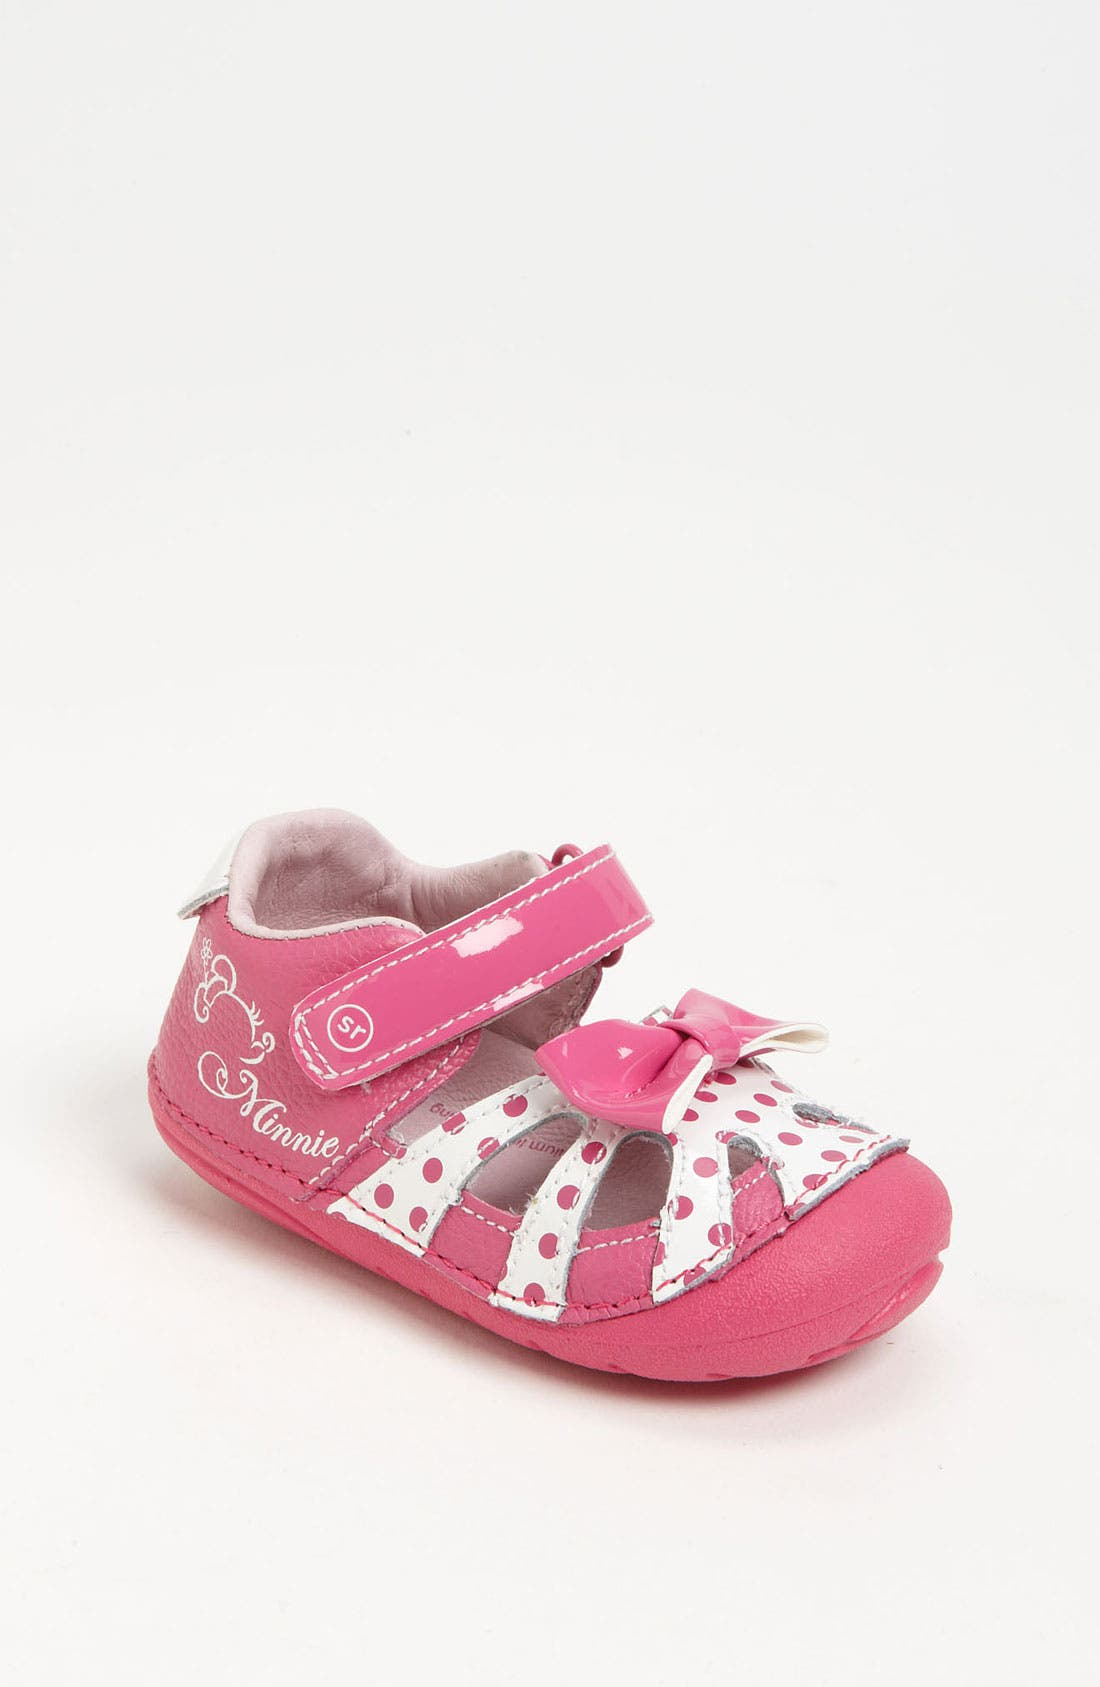 Main Image - Stride Rite 'Minnie' Sandal (Baby & Walker)